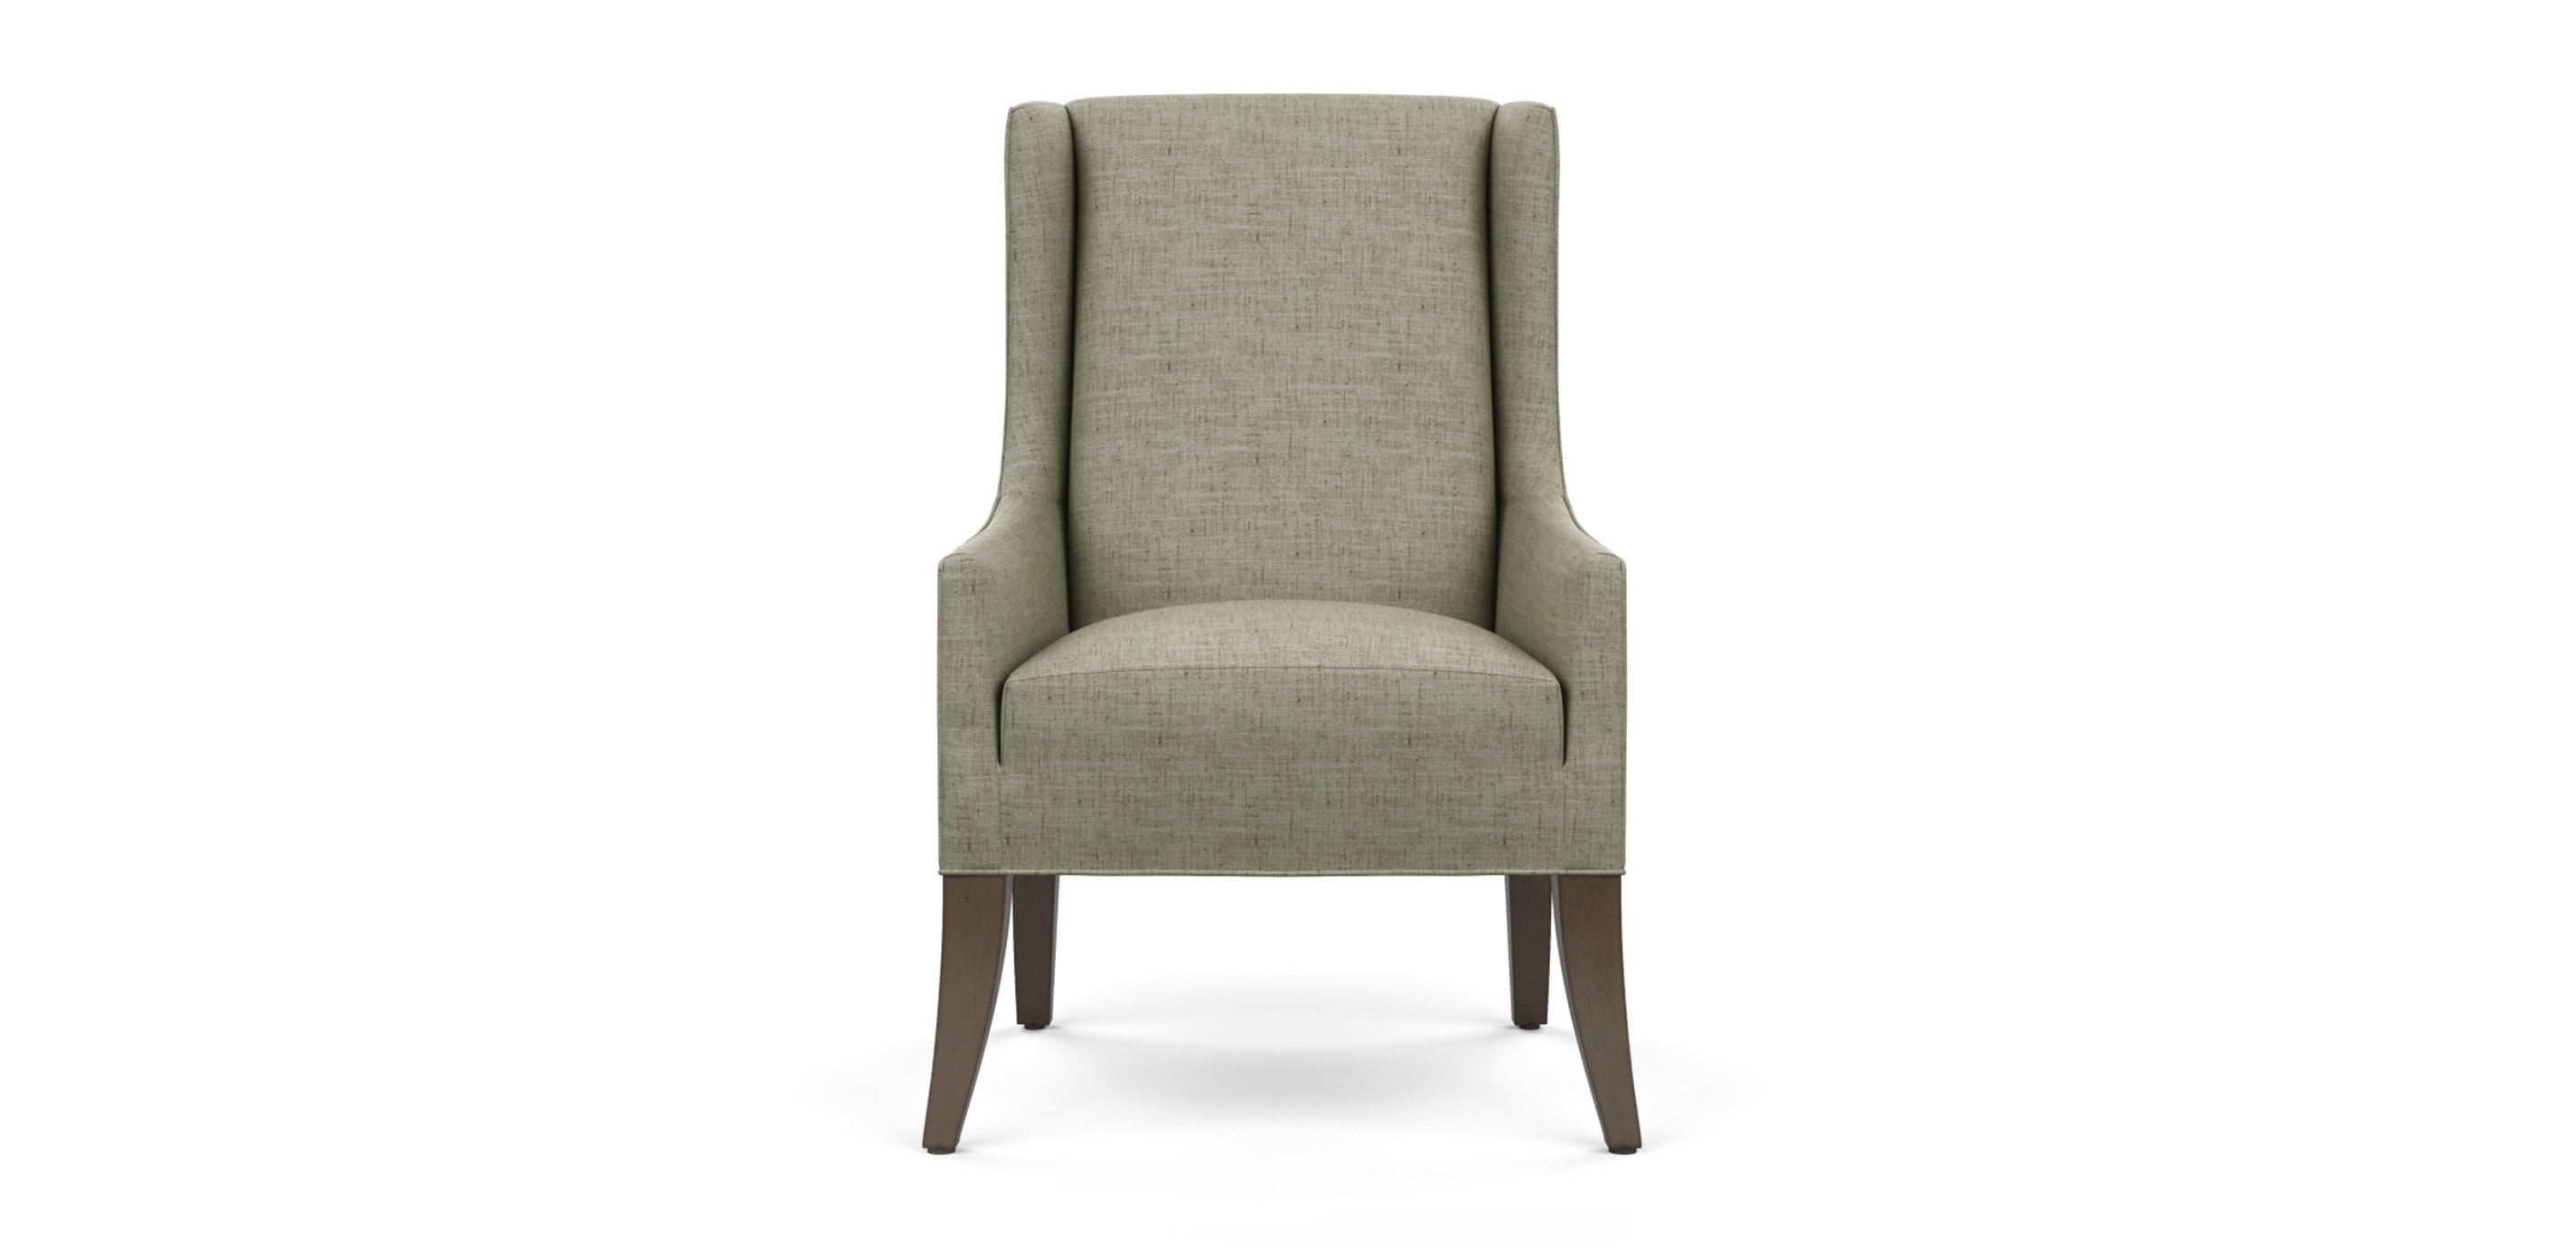 Ethan Allen Club Chairs Larkin Host Chair Arm Host Chairs Ethan Allen